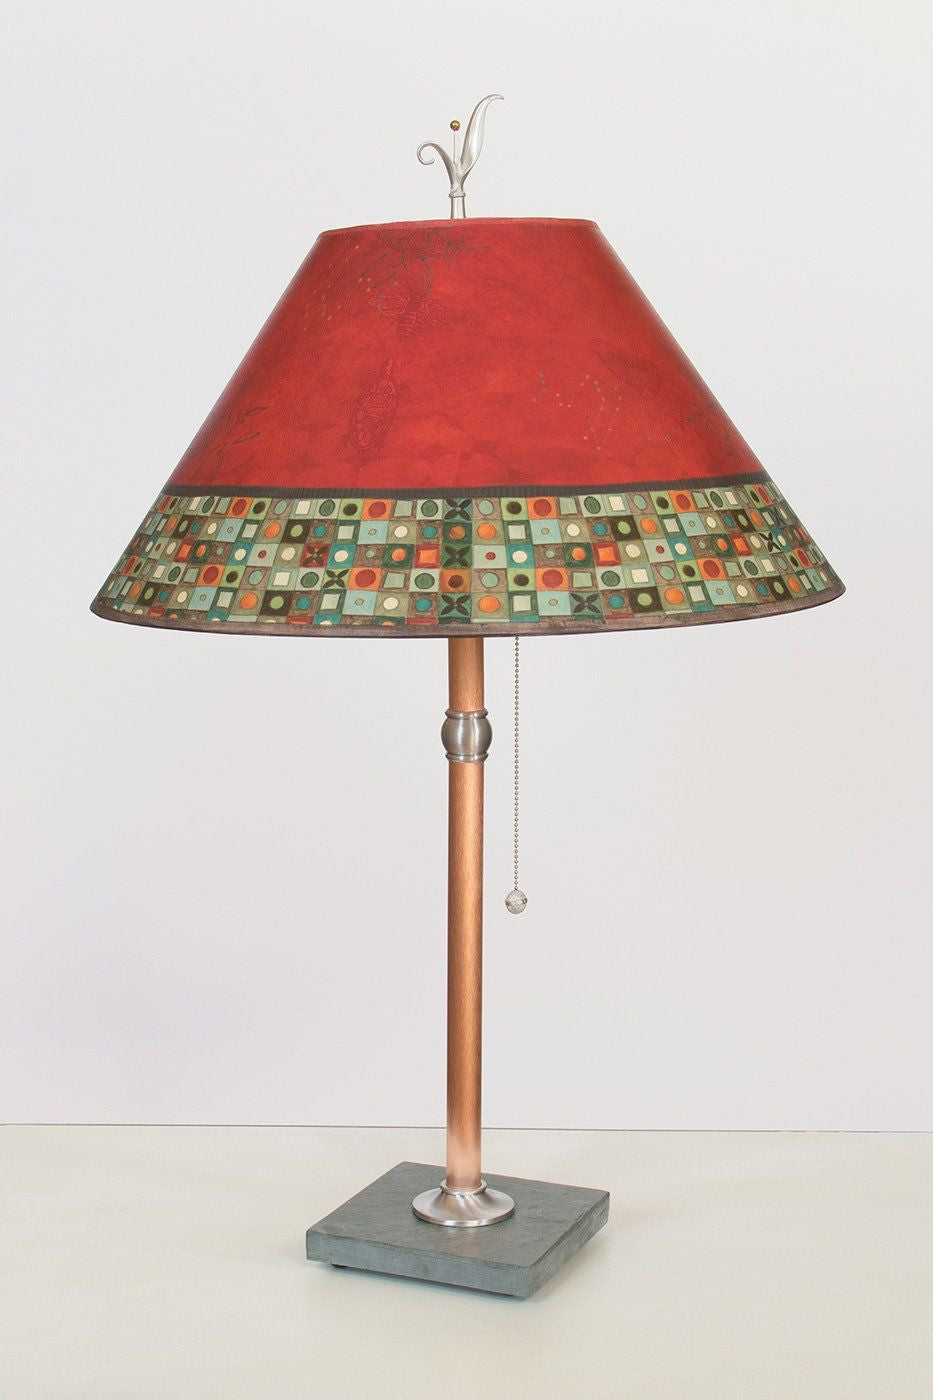 Copper Table Lamp on Vermont Slate with Large Conical Shade in Red Mosaic